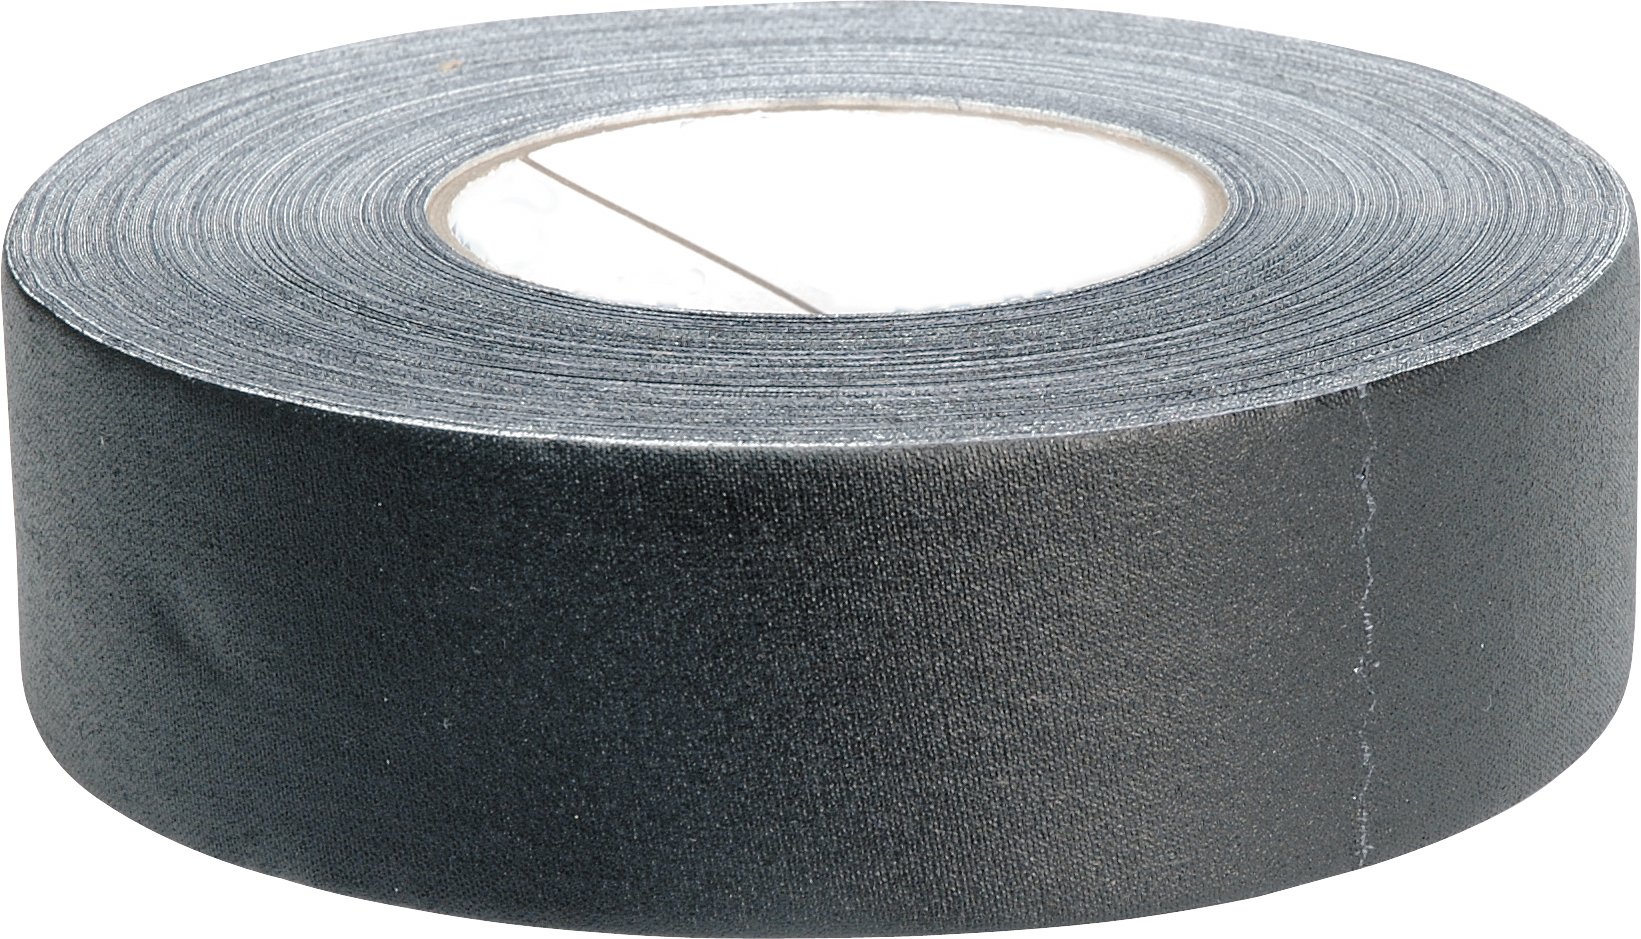 Carpet Underlay Joining Tape - Vital For ALL Underlays